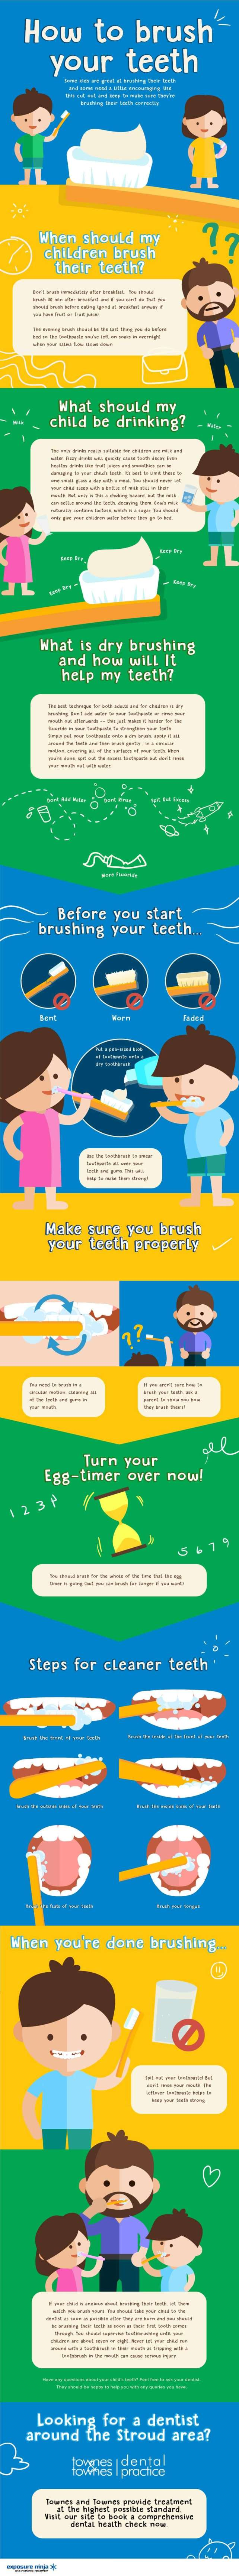 How To Brush Your Teeth – A Guide for Parents and Children Infographic